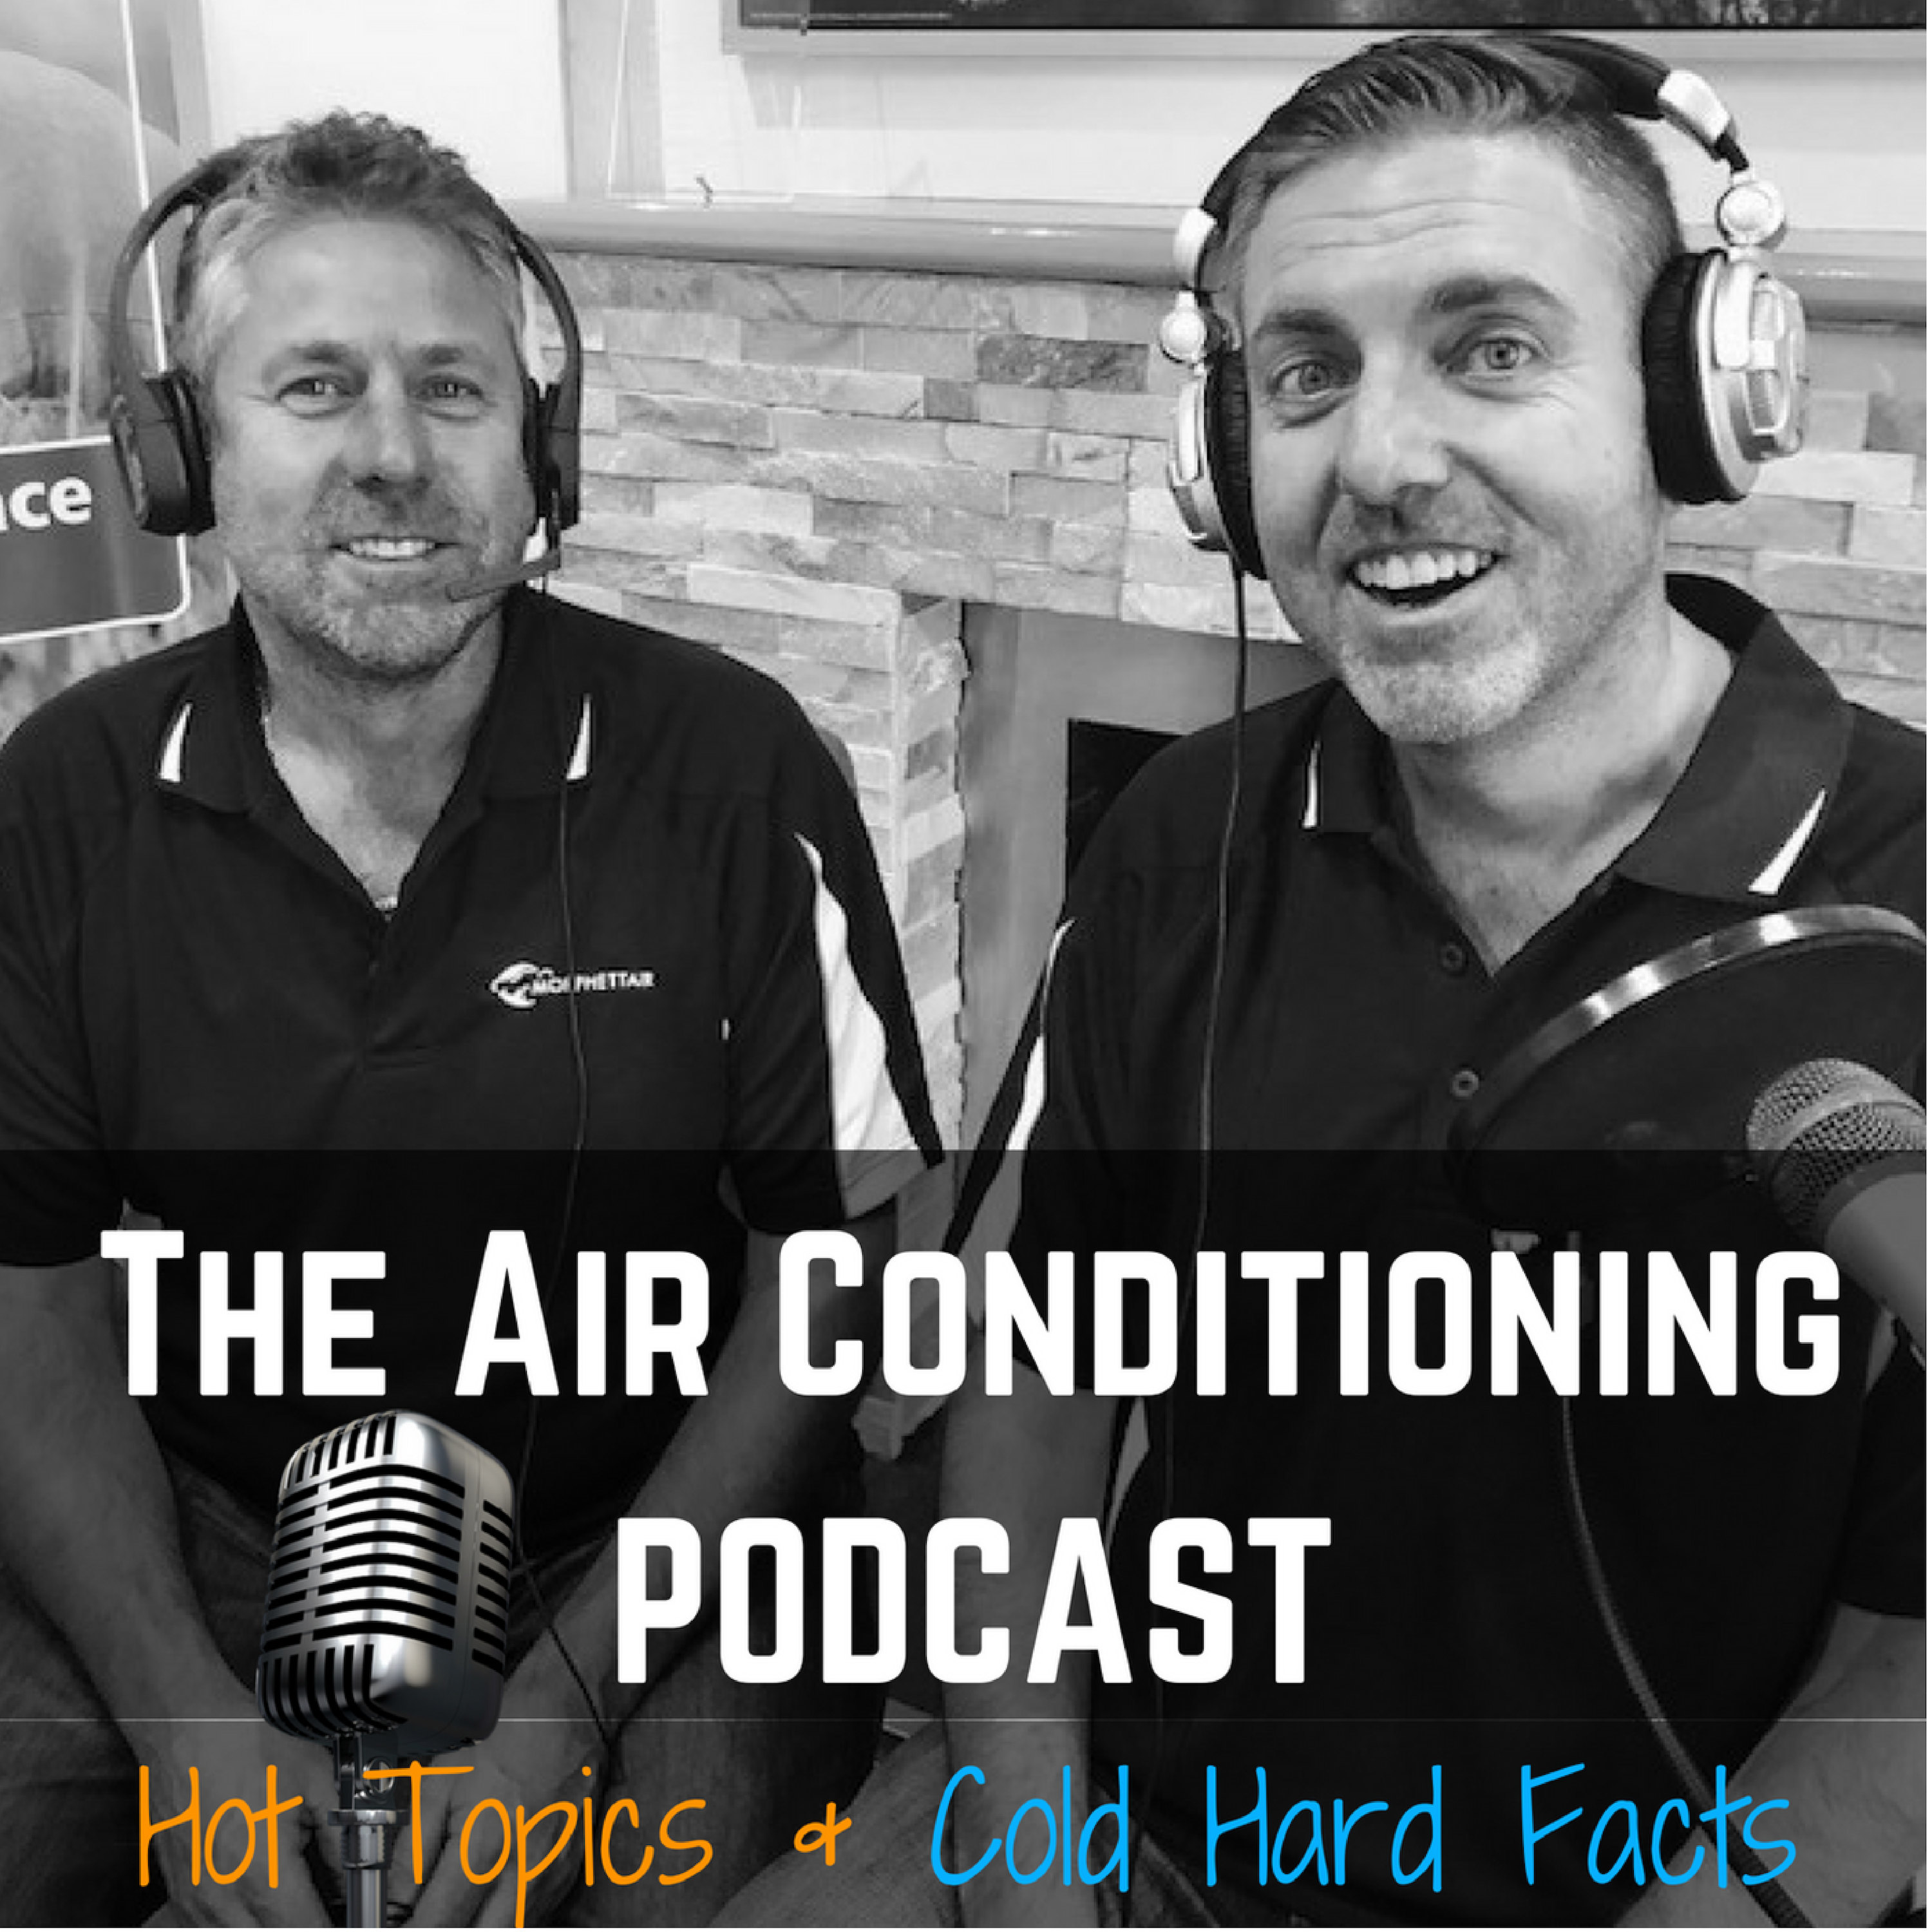 The Air Conditioning Podcast